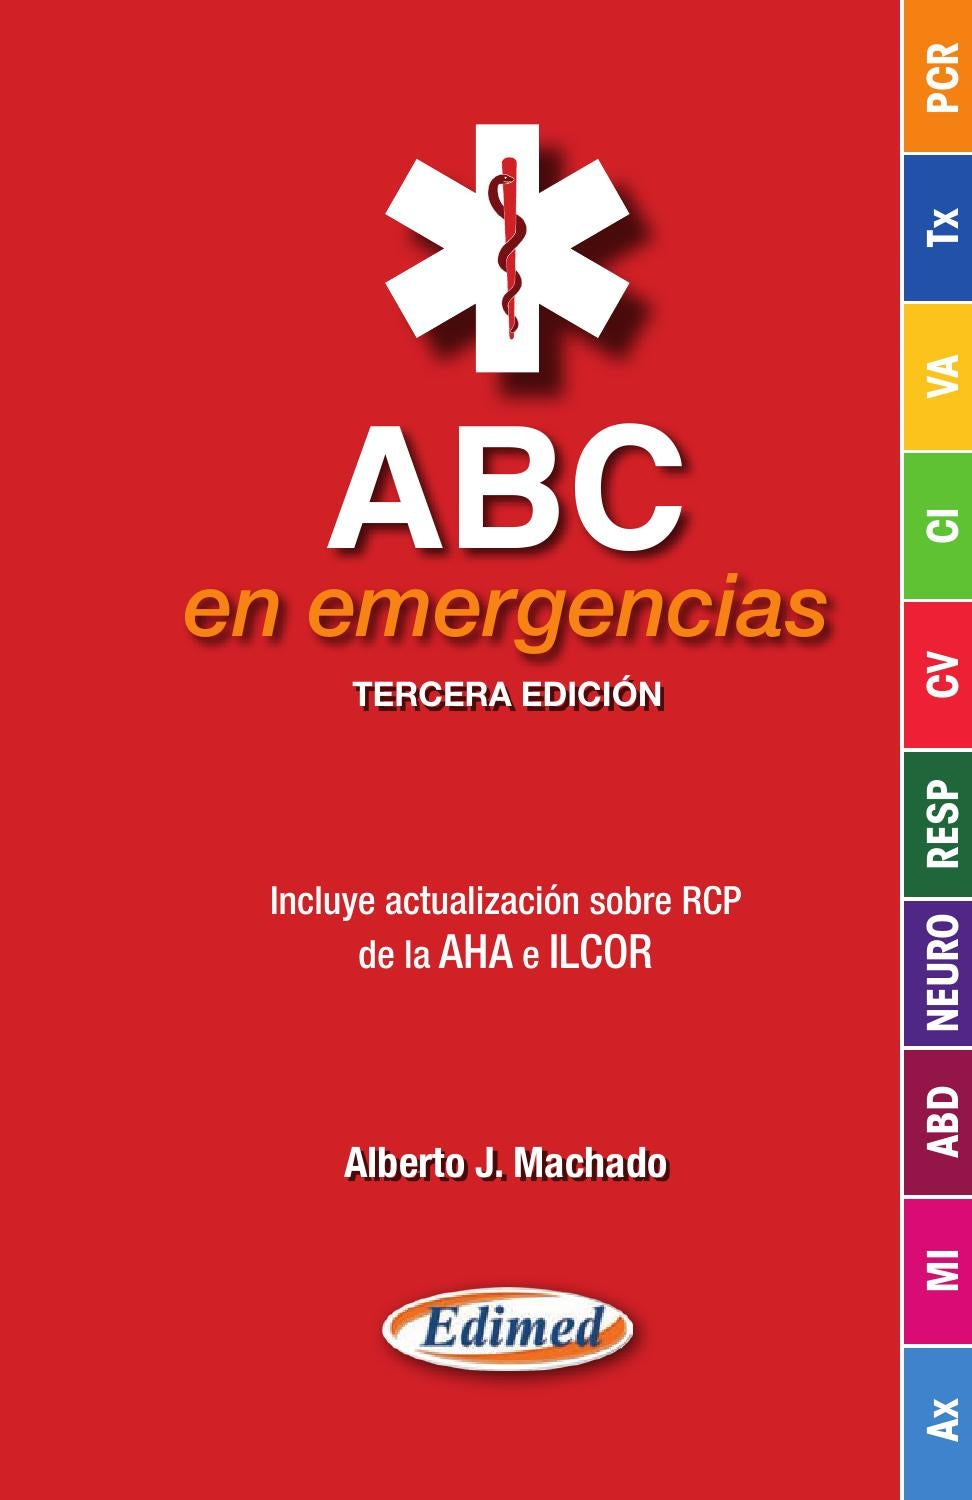 abc en emergencias 3a ed a j machado 2013 by manuel rivera